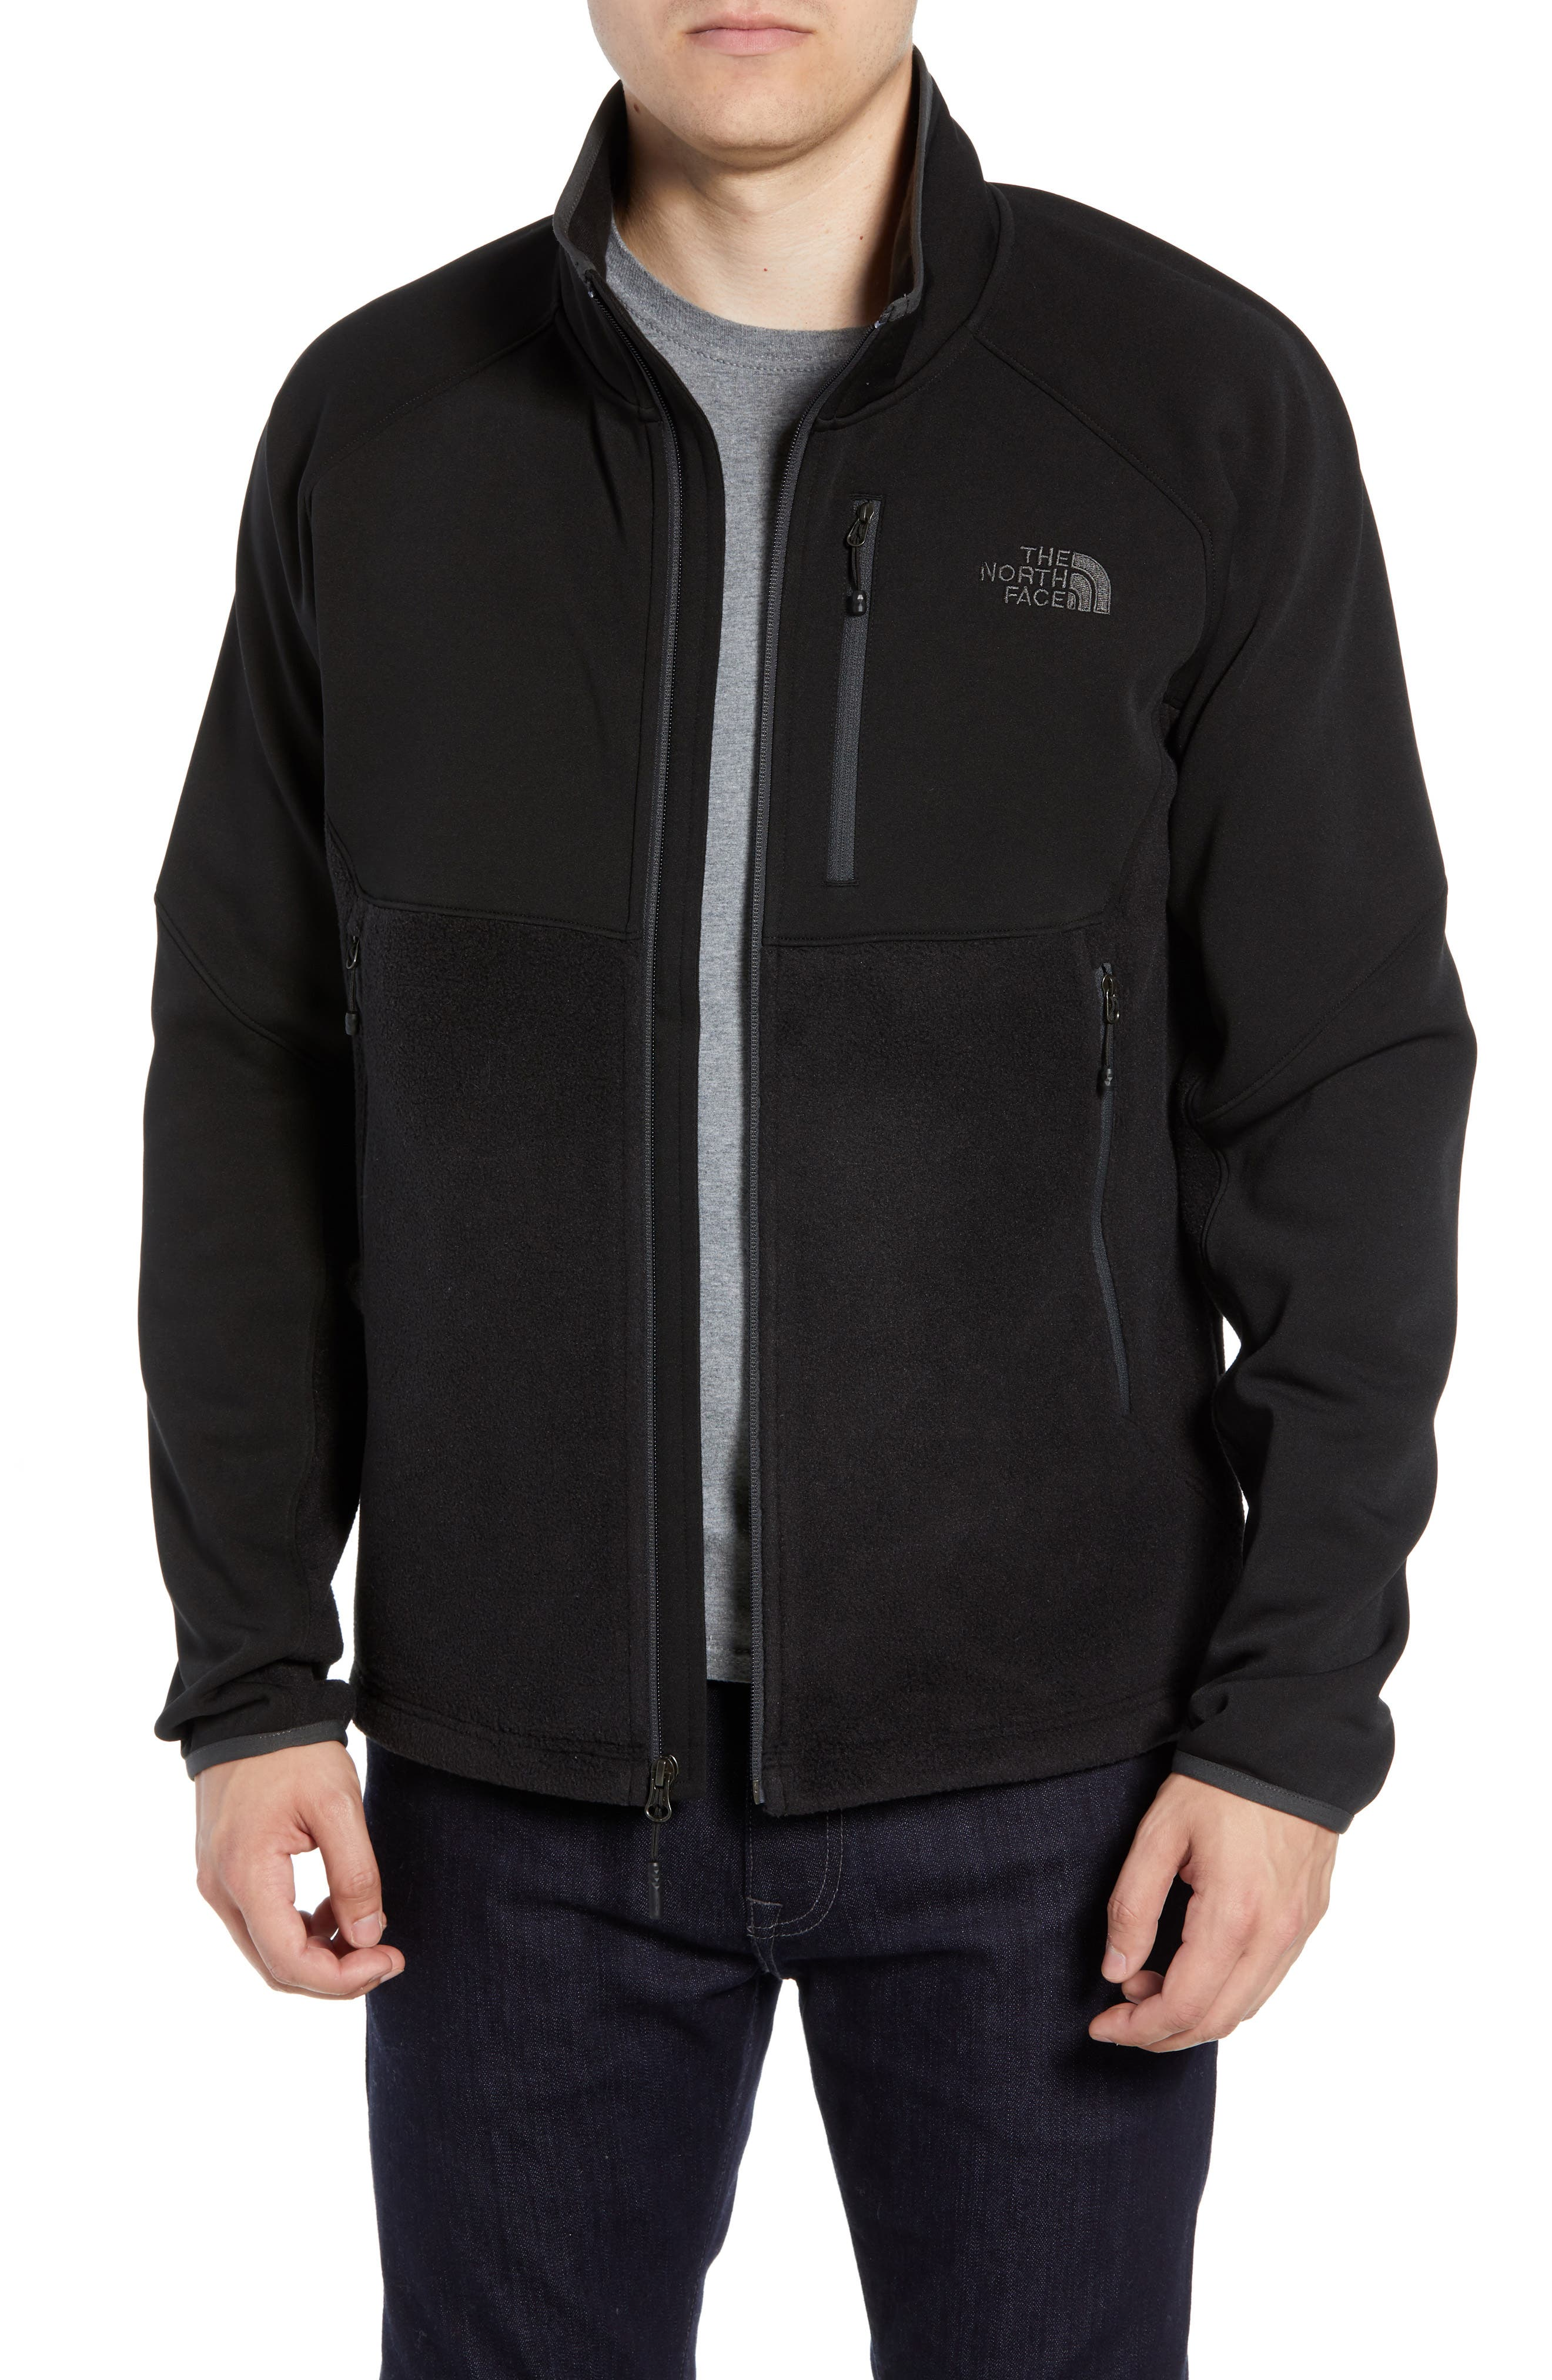 Tolmie Peak Hybrid Water Repellent Zip Jacket,                             Main thumbnail 1, color,                             TNF BLACK/ TNF BLACK